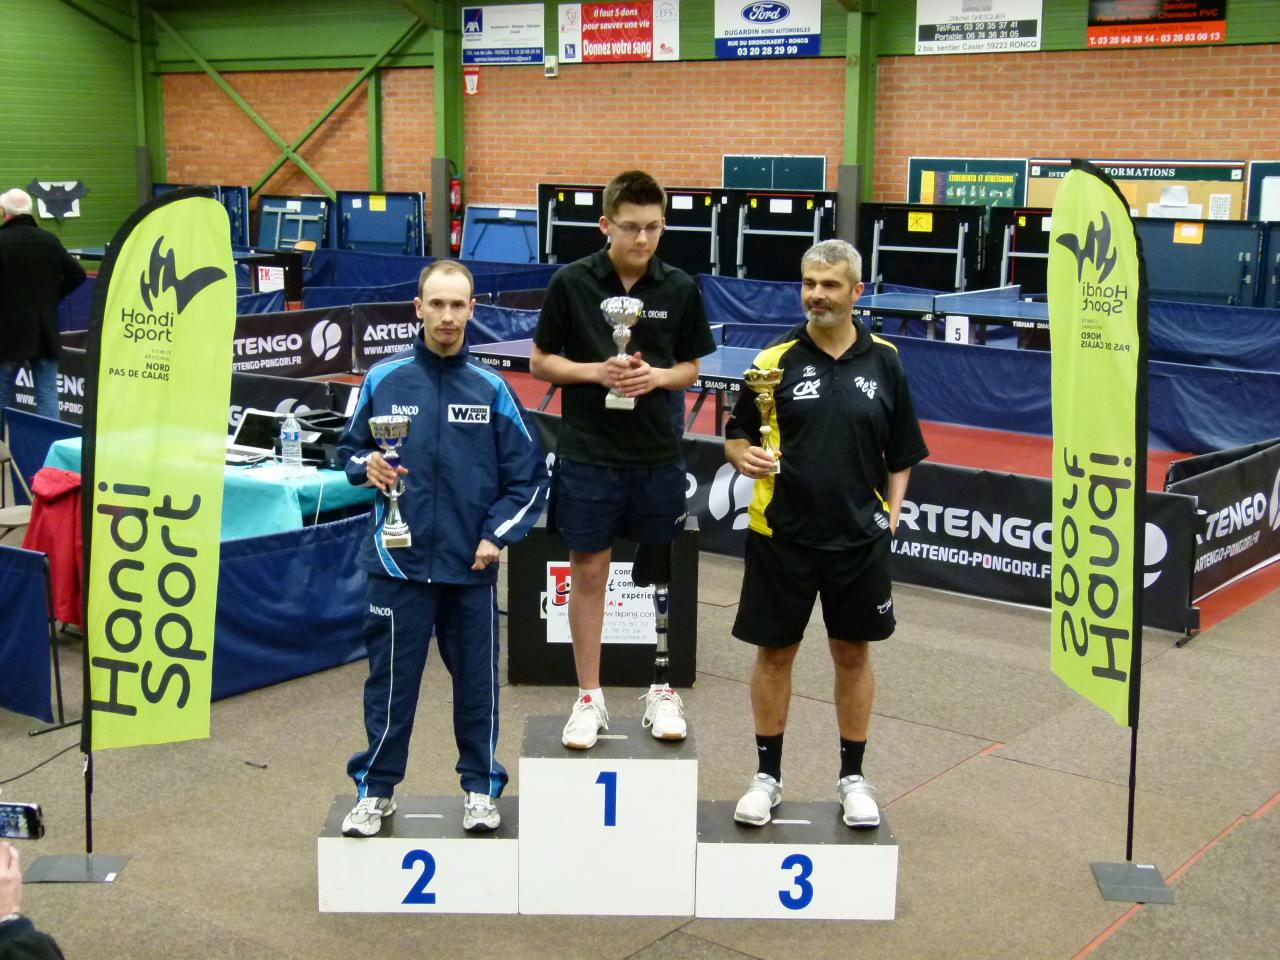 3eme tour nationale 3 tennis de table handisport - Ligue du nord pas de calais de tennis de table ...